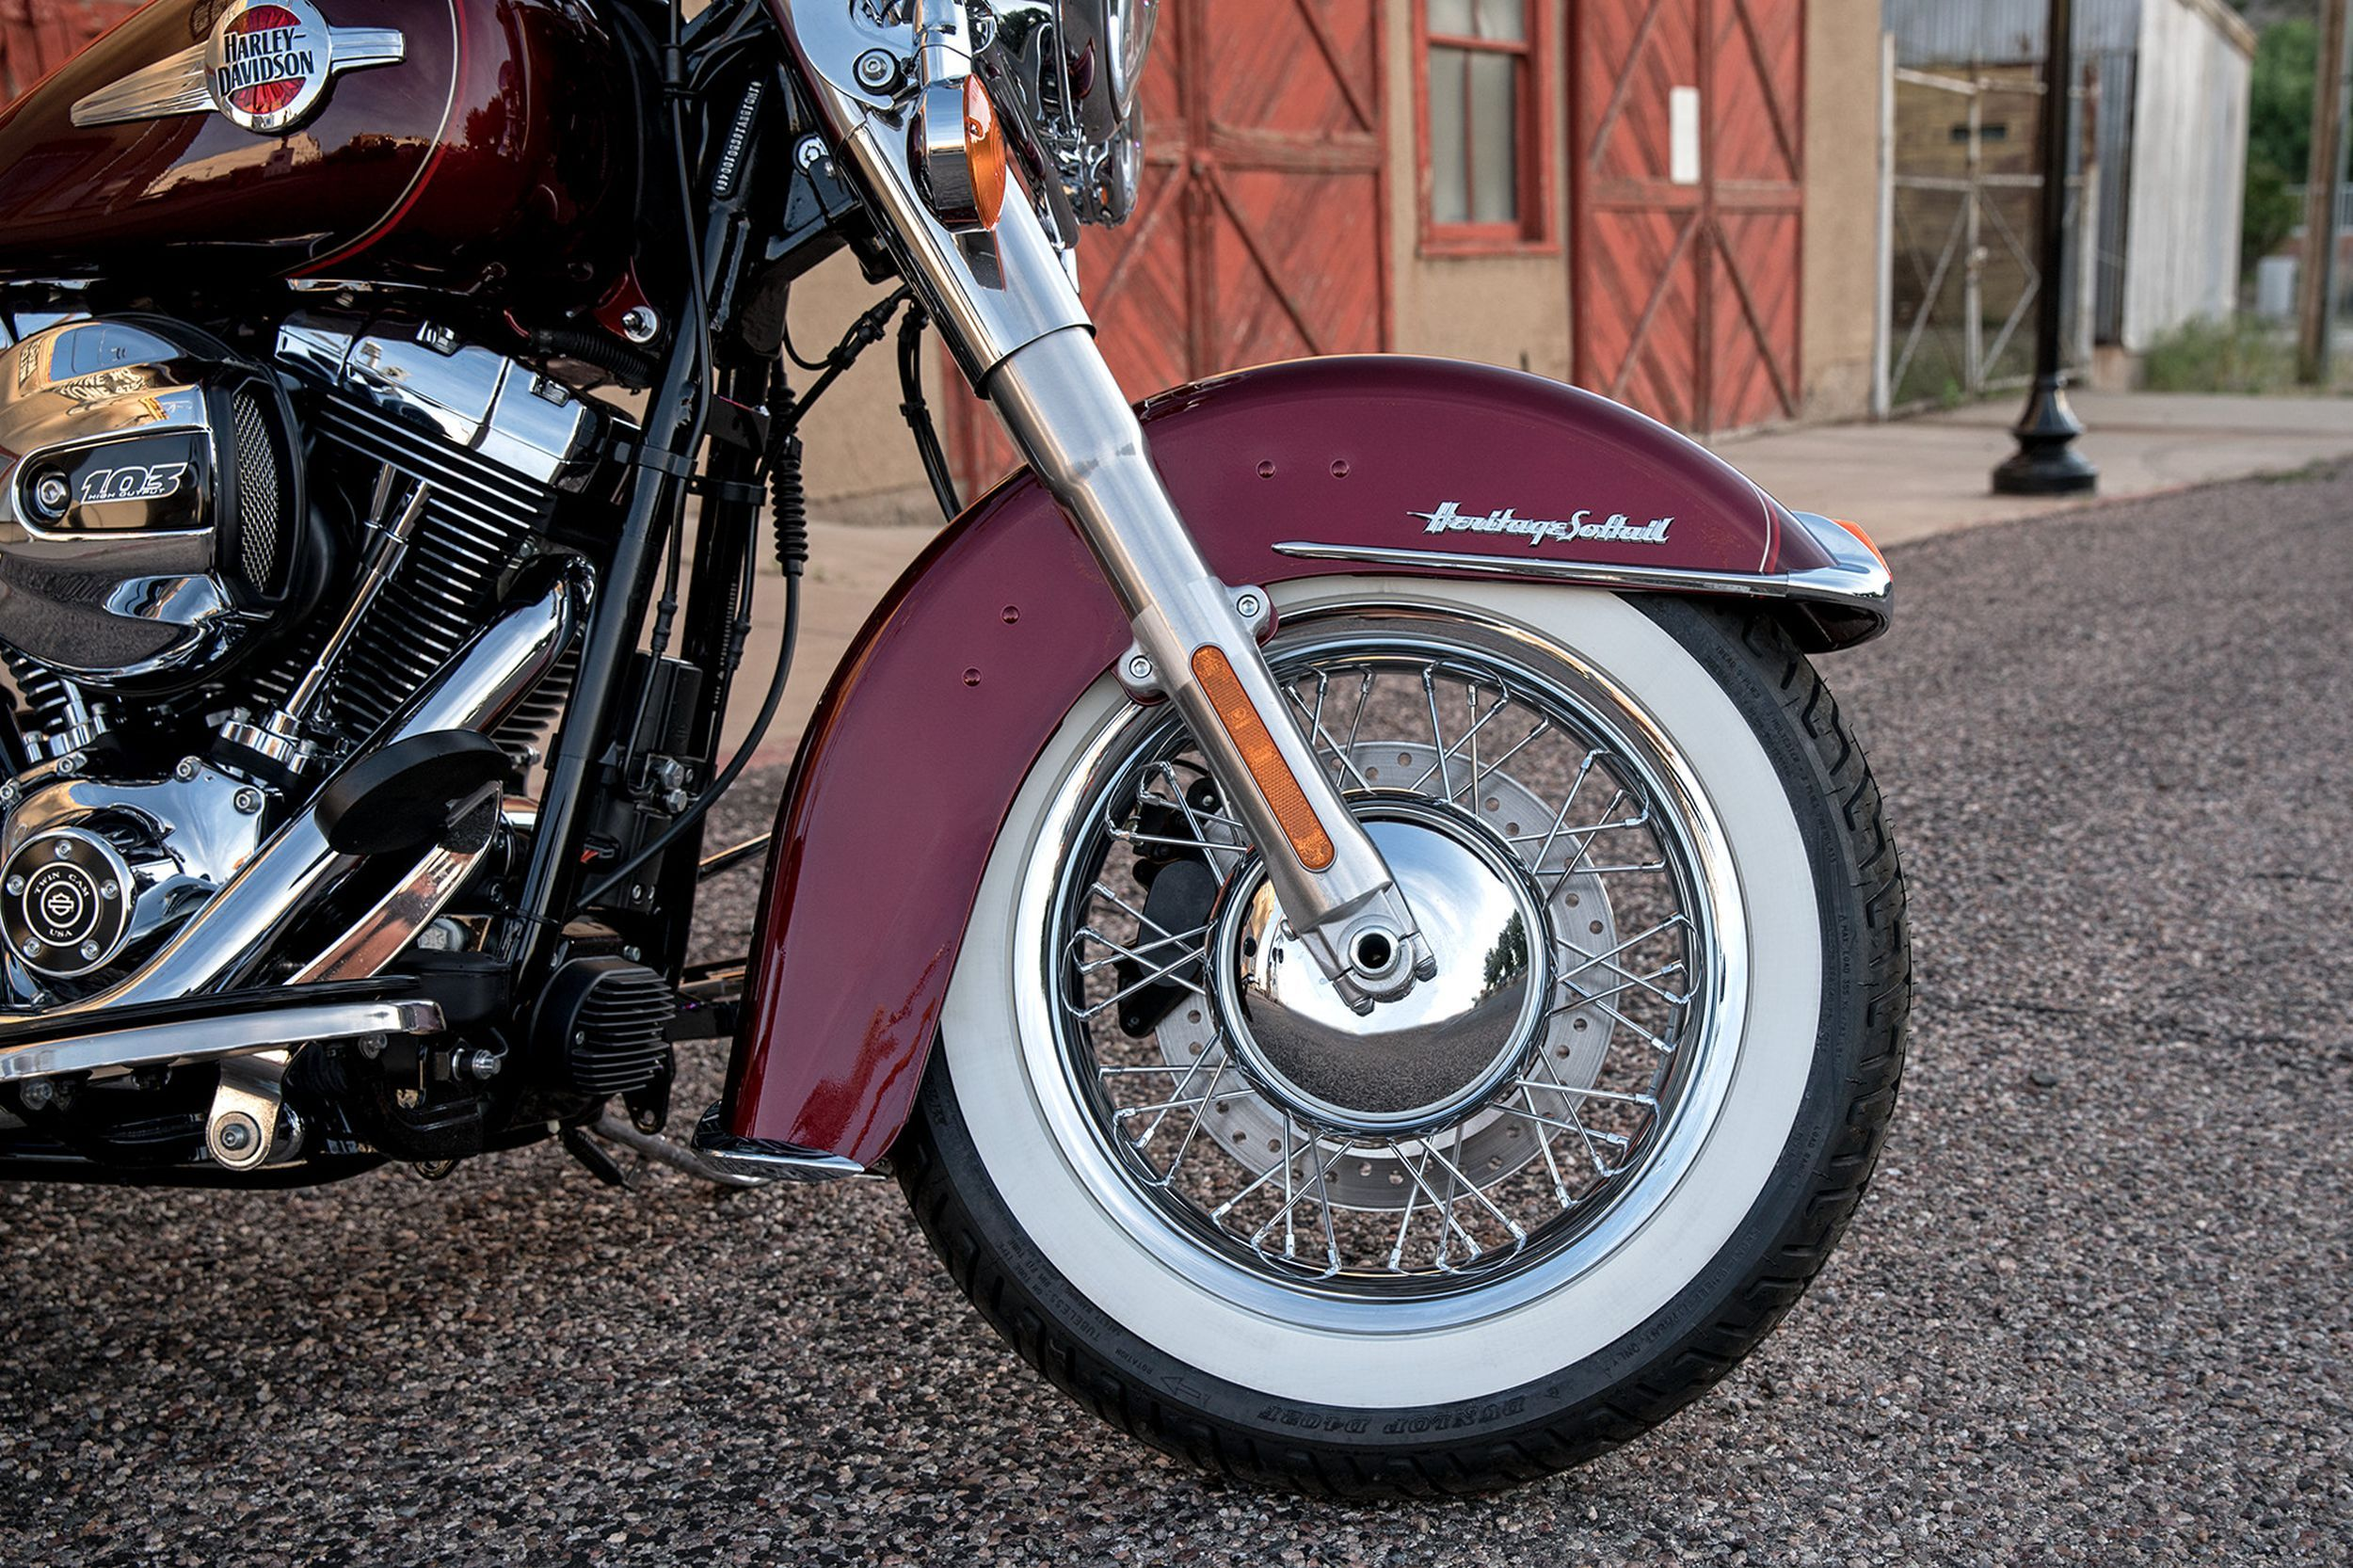 harley davidson softail heritage classic flstc test. Black Bedroom Furniture Sets. Home Design Ideas